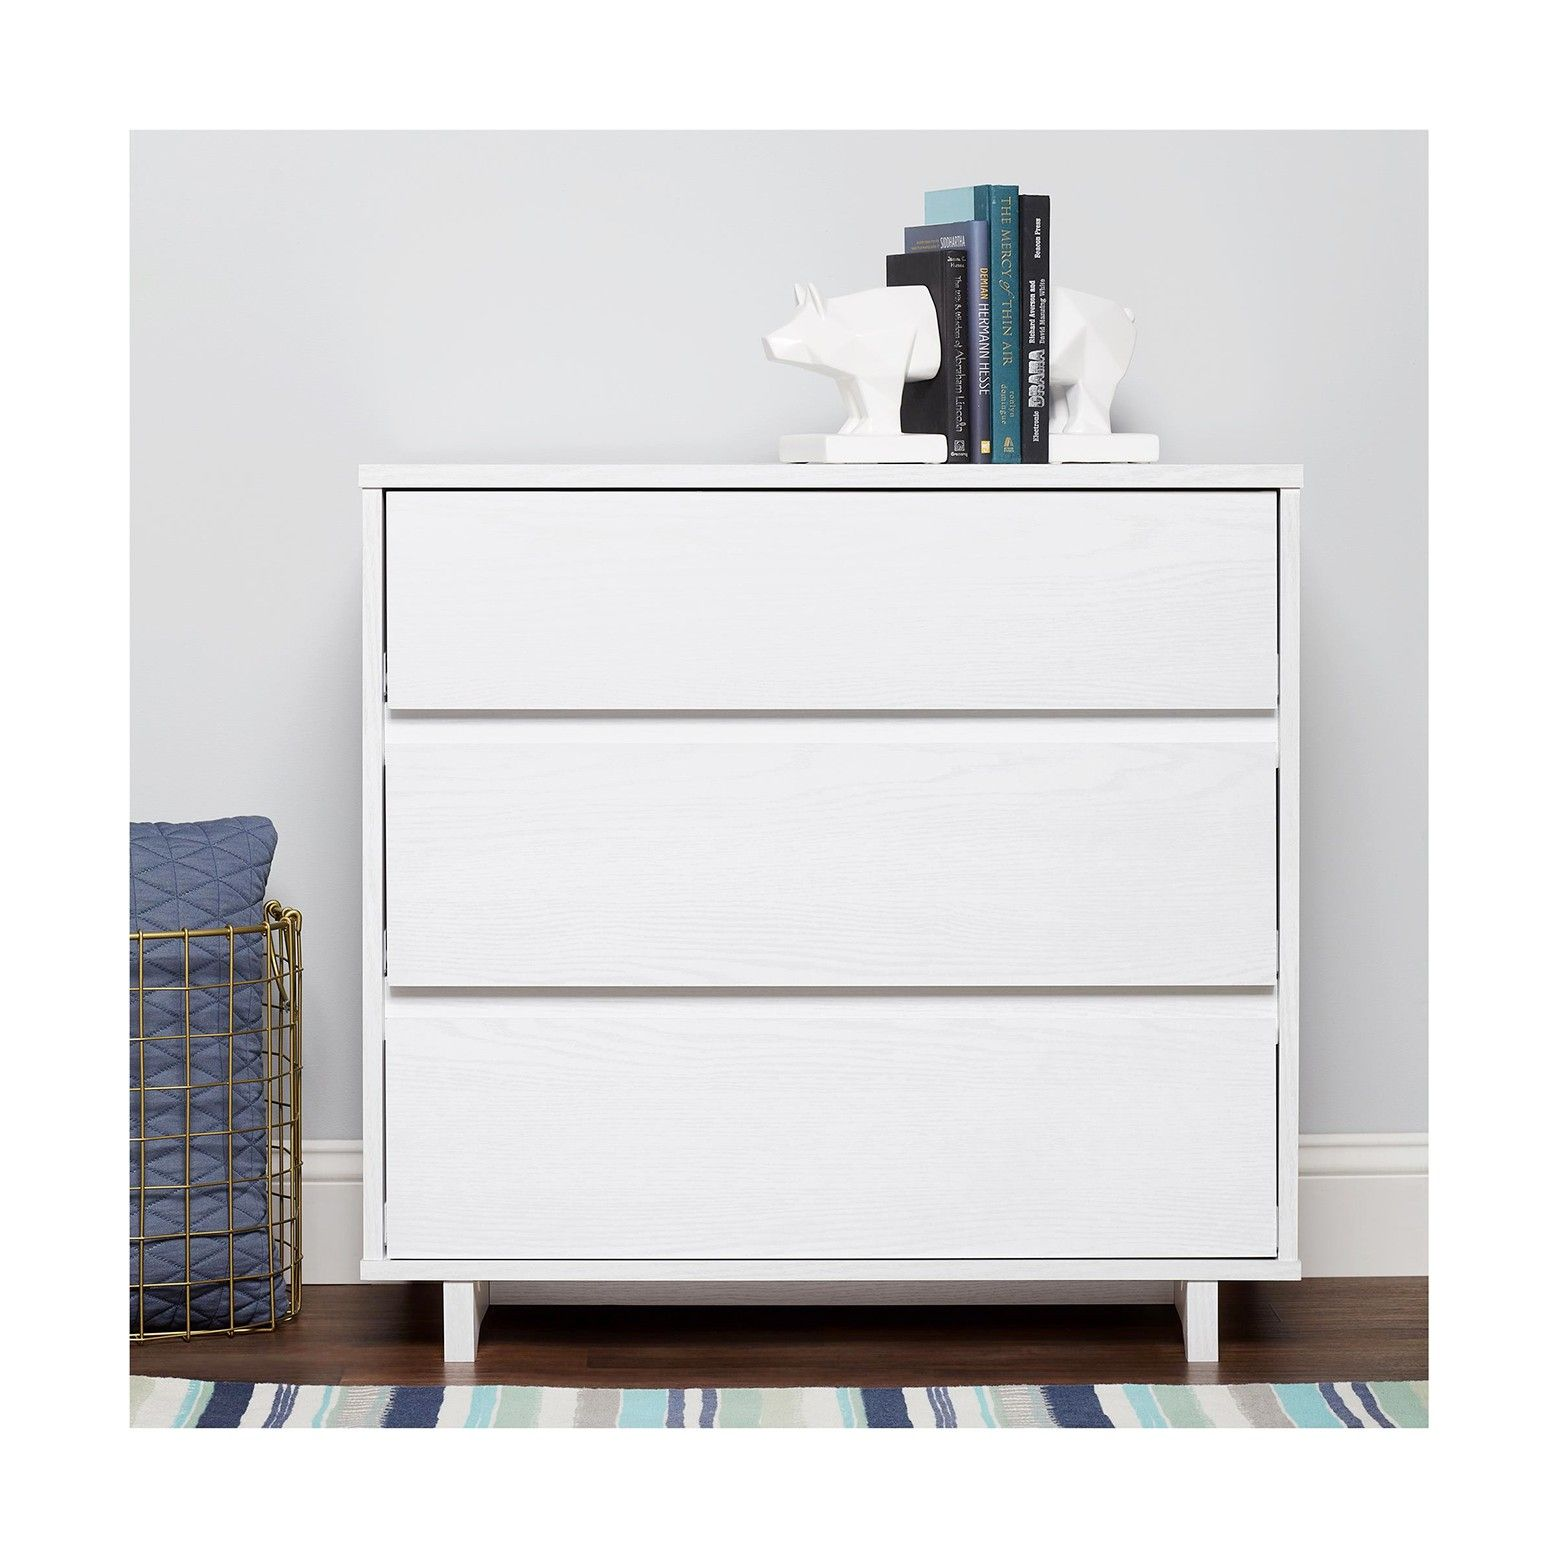 The Room Essentials Modern 3 Drawer Dresser Has A Smooth Clean